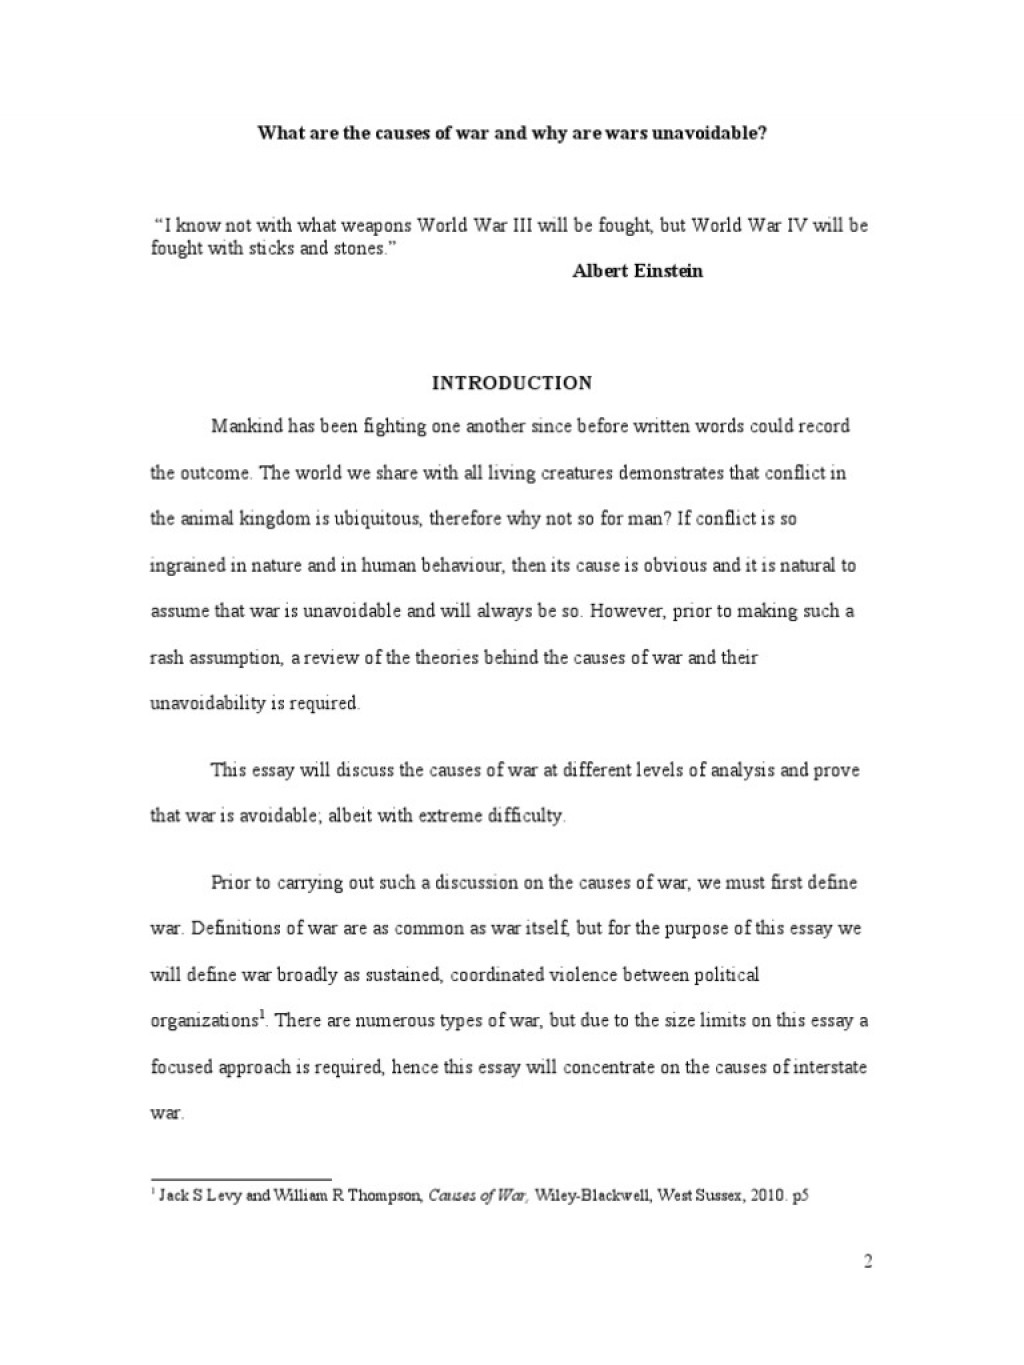 006 War Essay Wwi What Are The Causes Of Methodology Worlds Ww1 Unbelievable Cold Topics In Malayalam Language Star Wars Examples Large